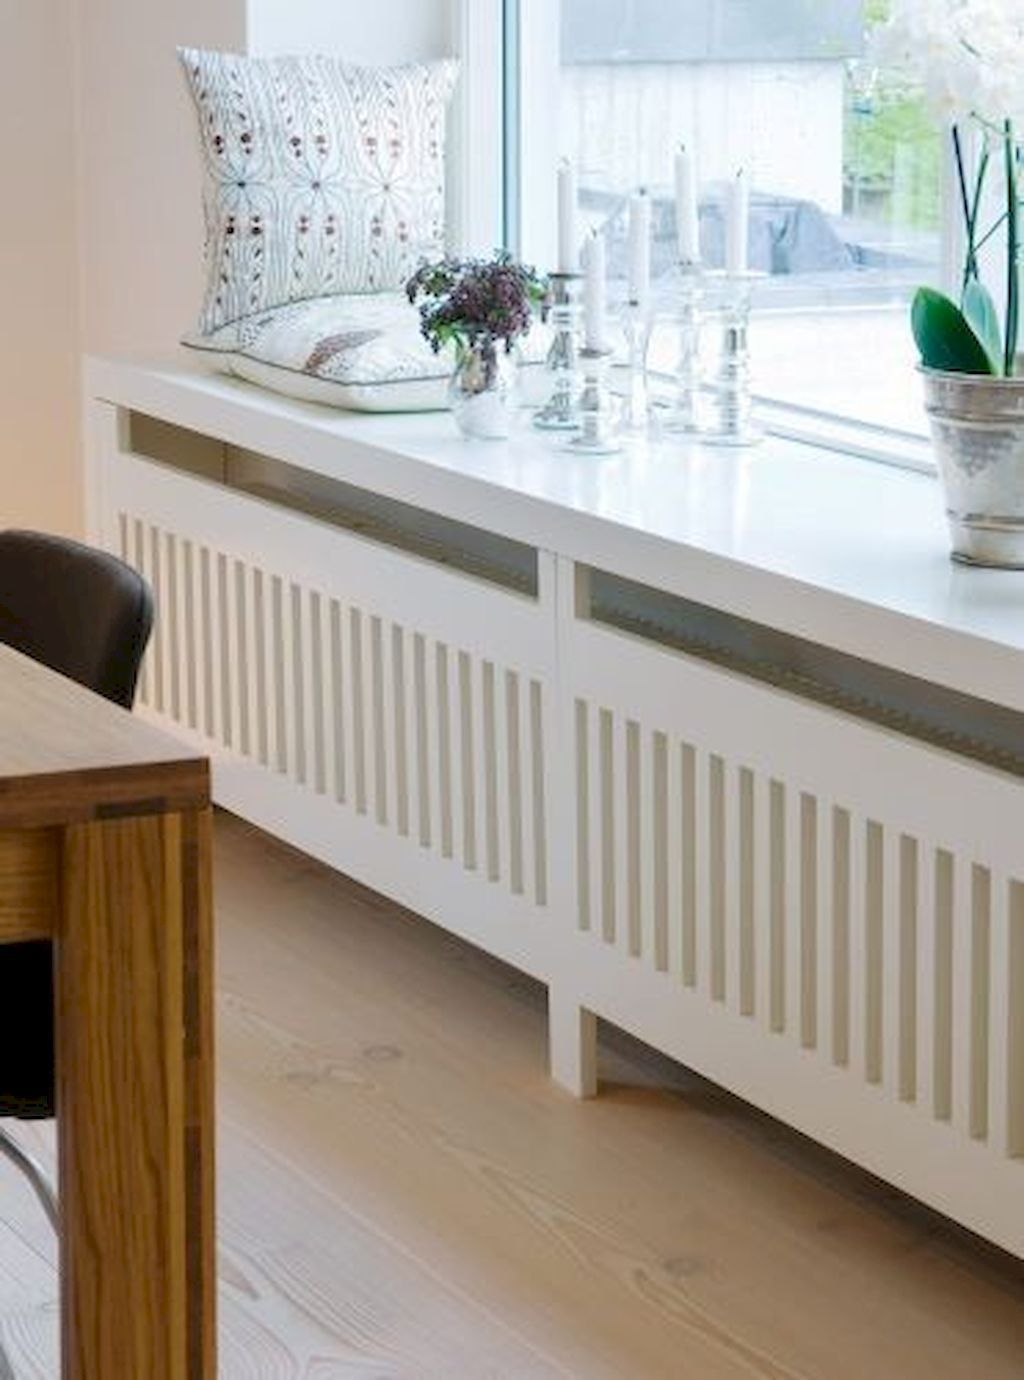 Designer Living Room Radiators: Awesome Give Your Dwelling A Fashionable Make Over On A